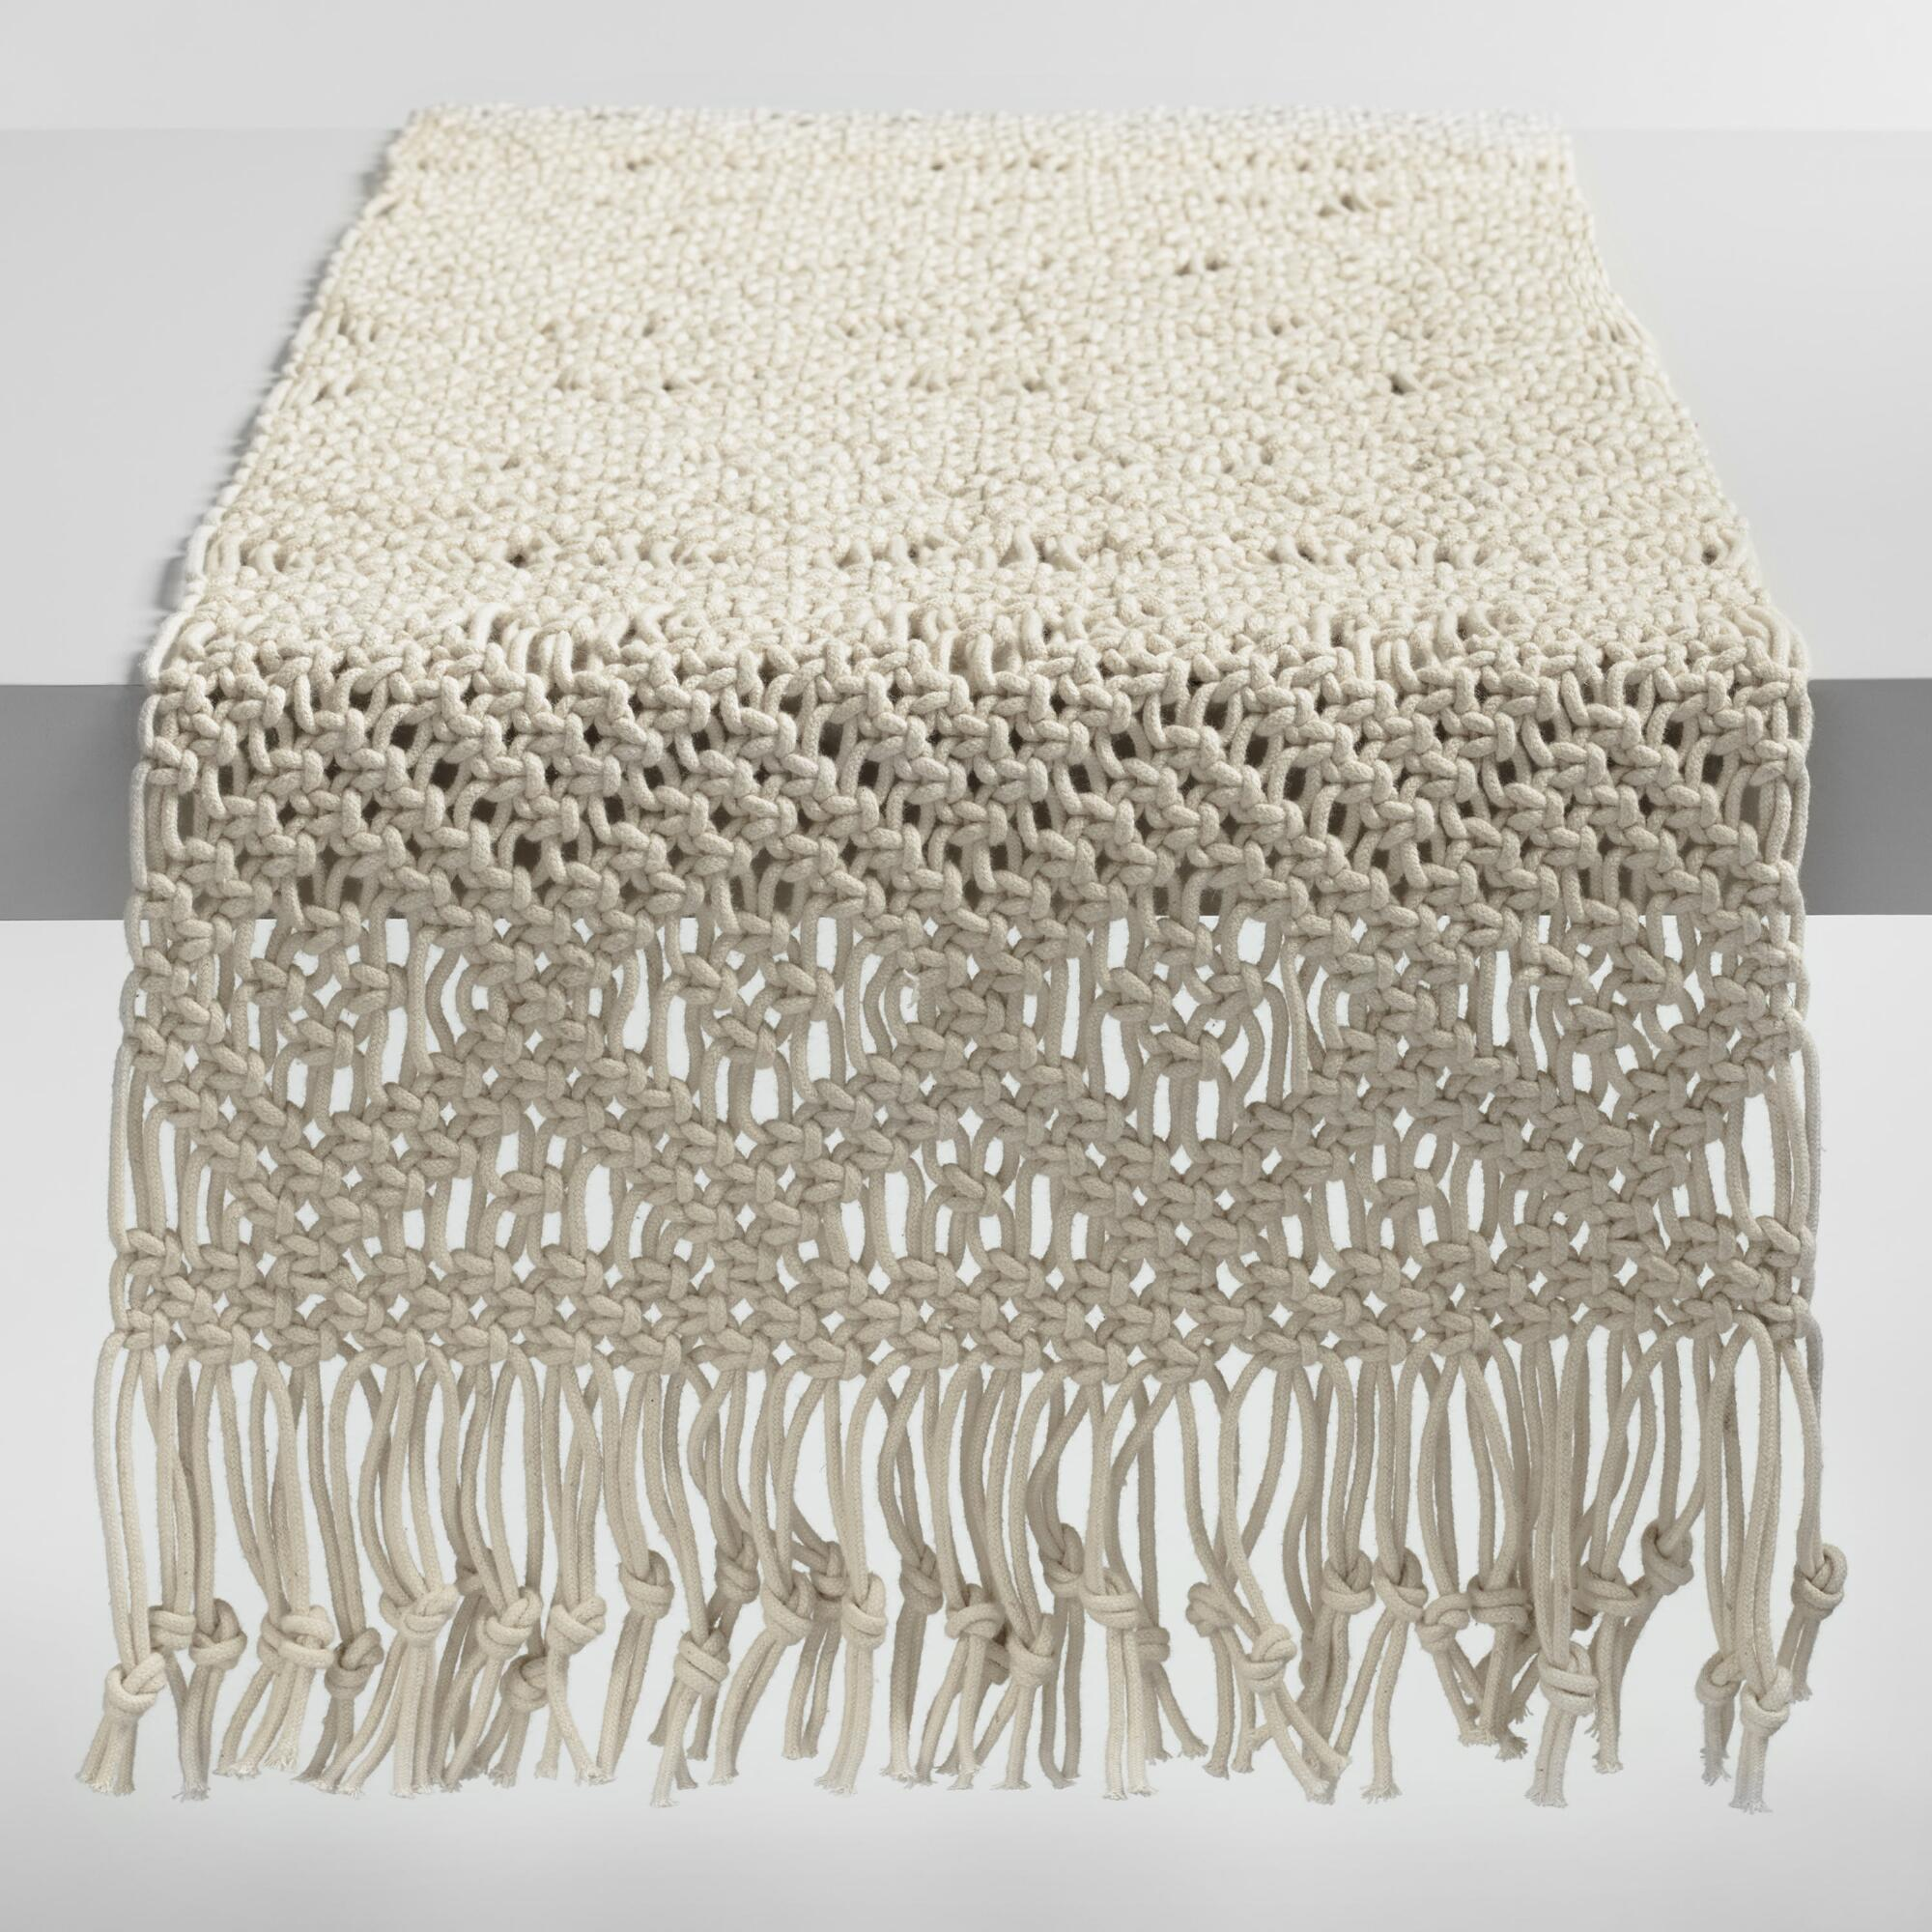 Natural Macrame Table Runner: White - Cotton by World Market